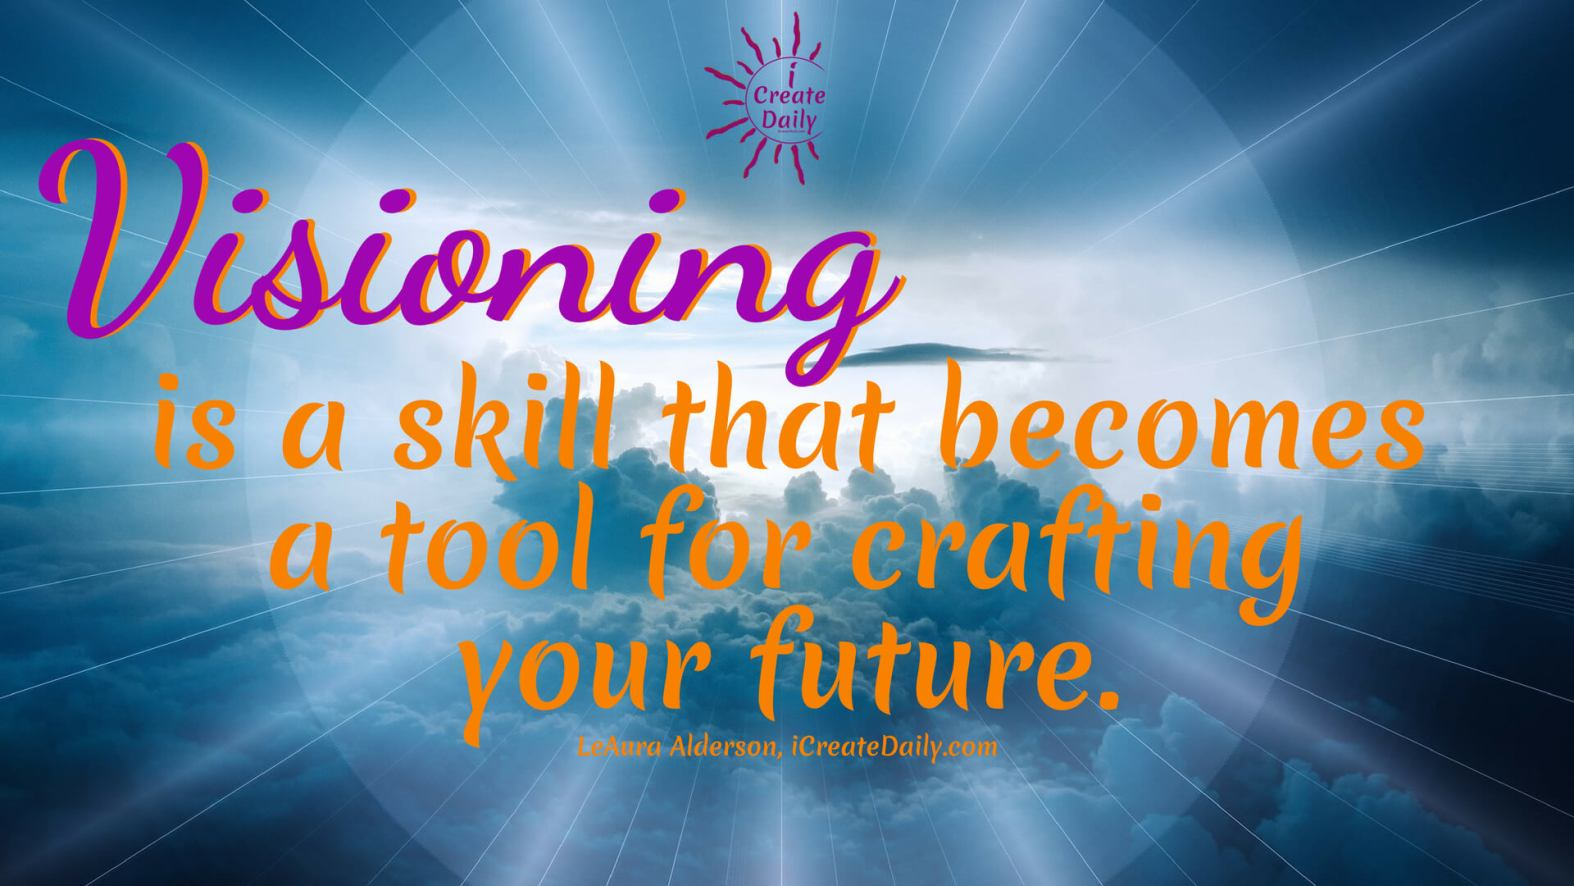 Visioning Is a Skill for Future